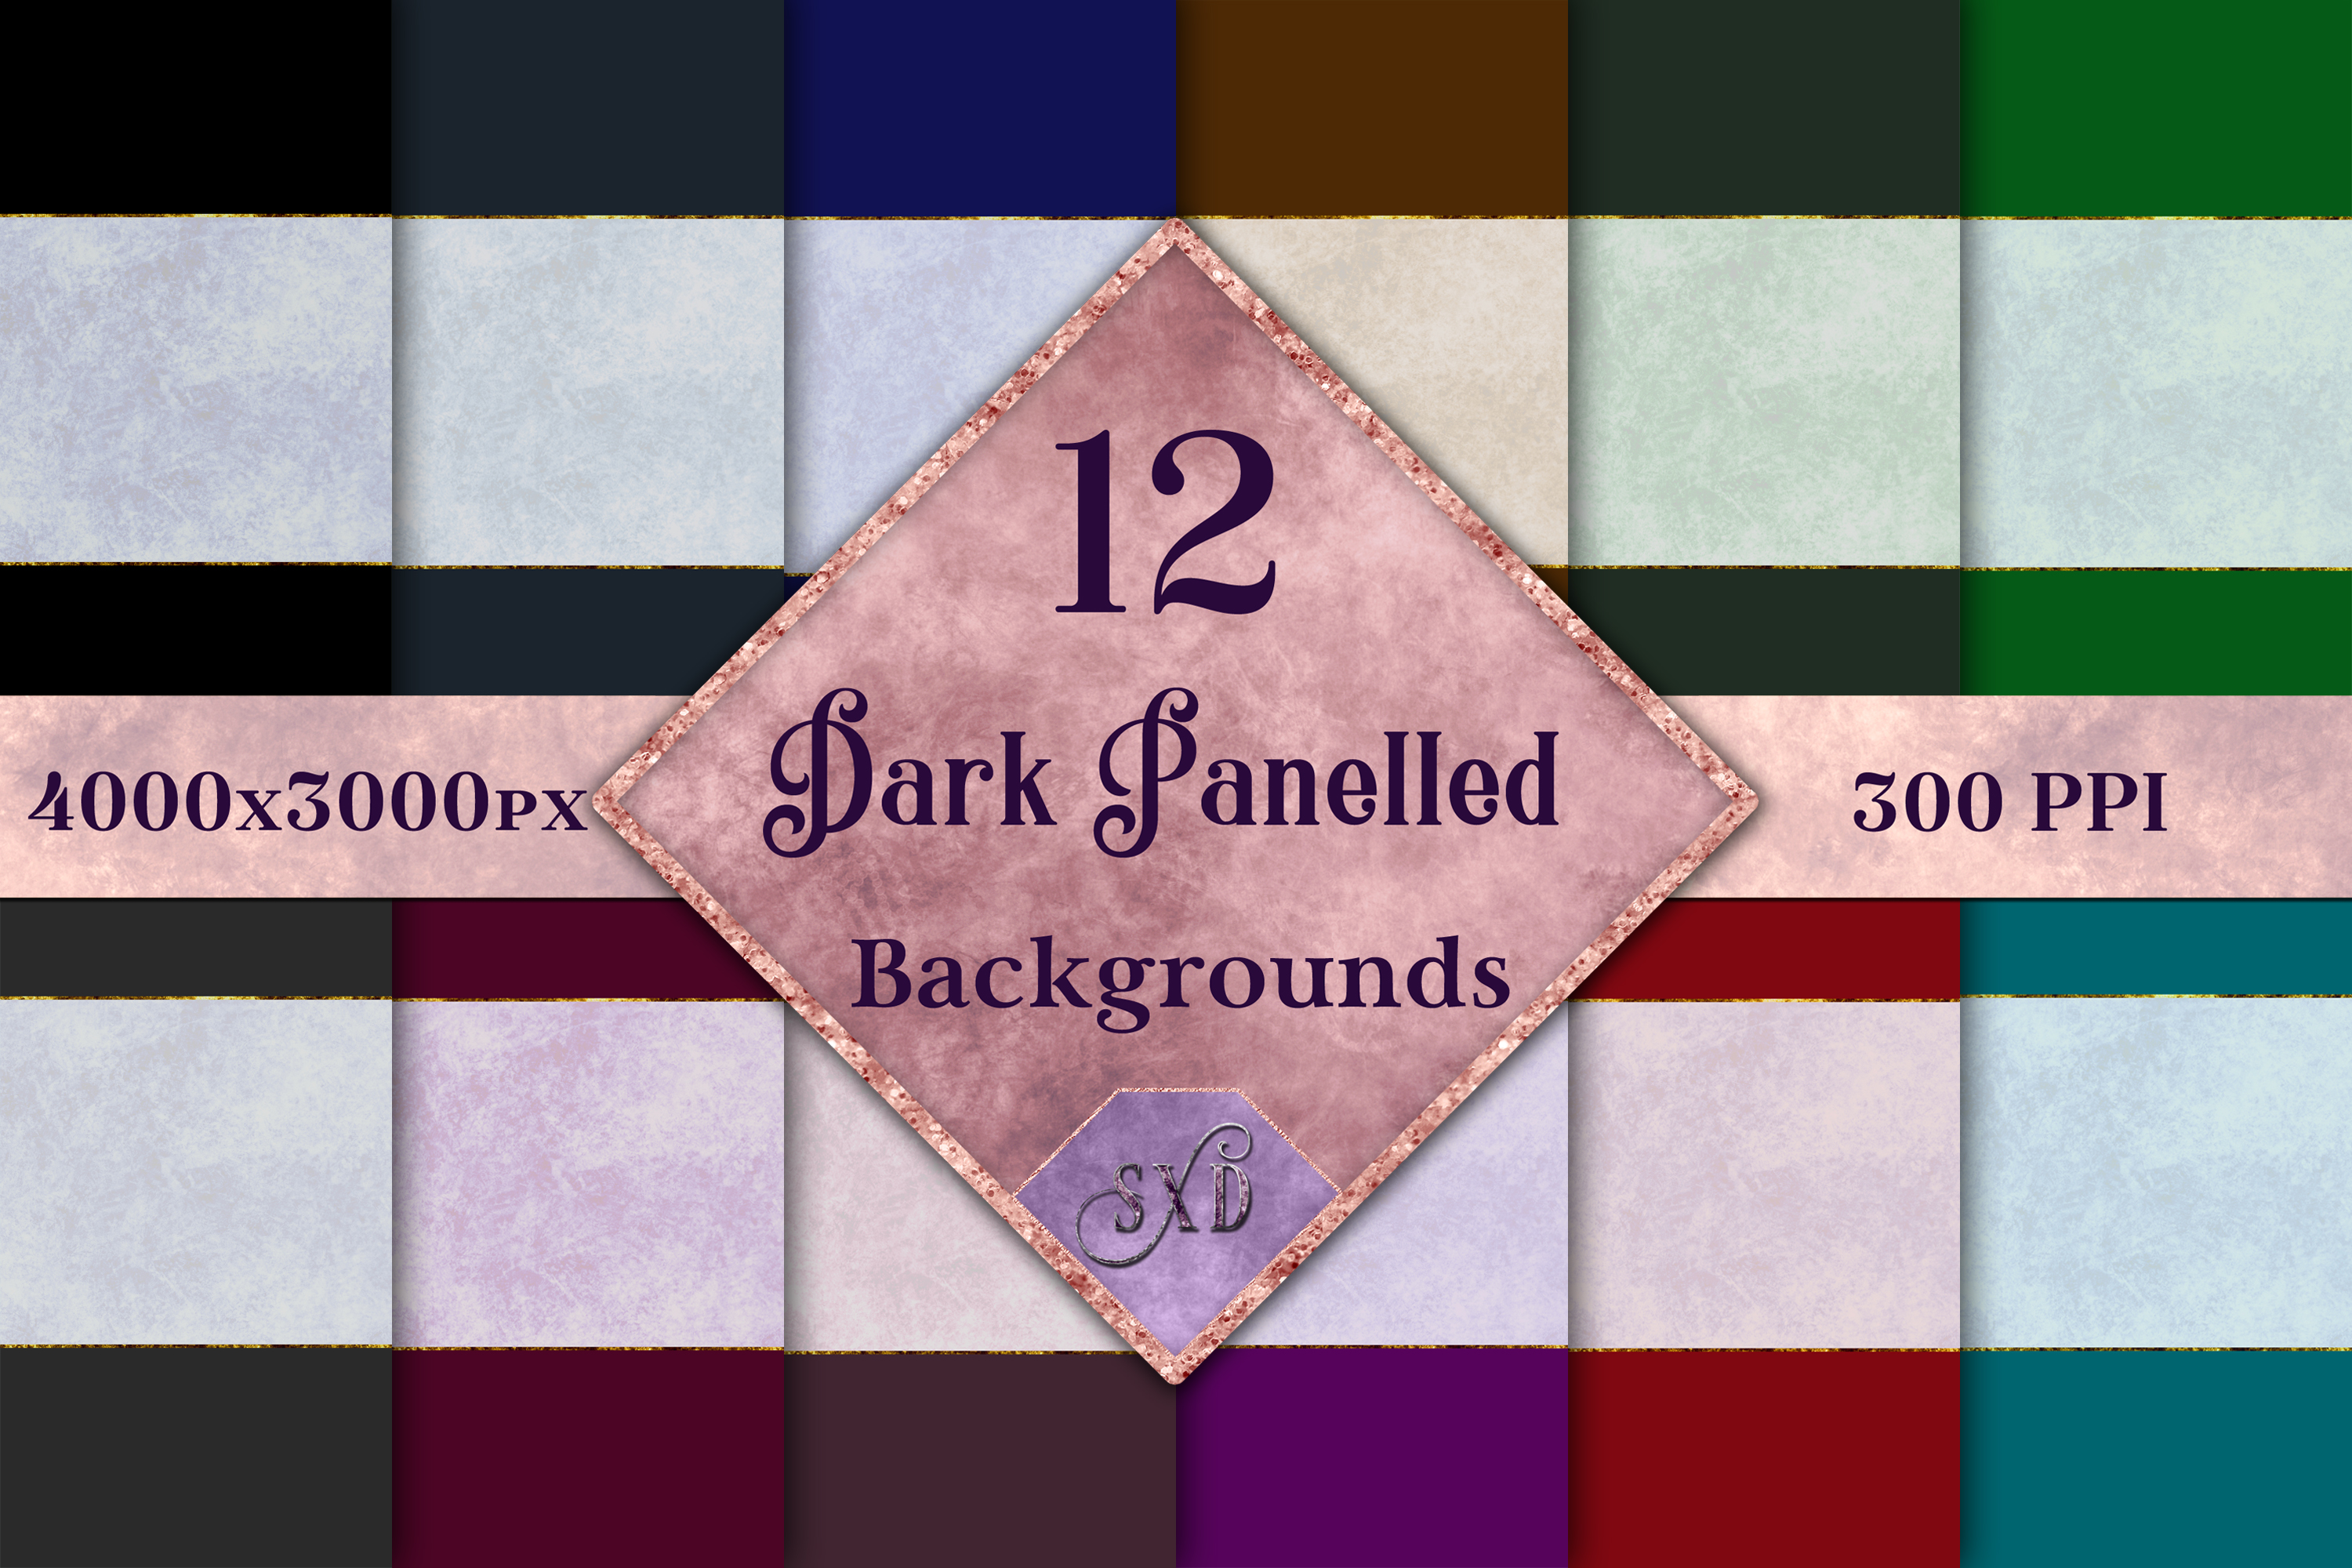 Dark Panelled Backgrounds - 12 Image Textures Set example image 1